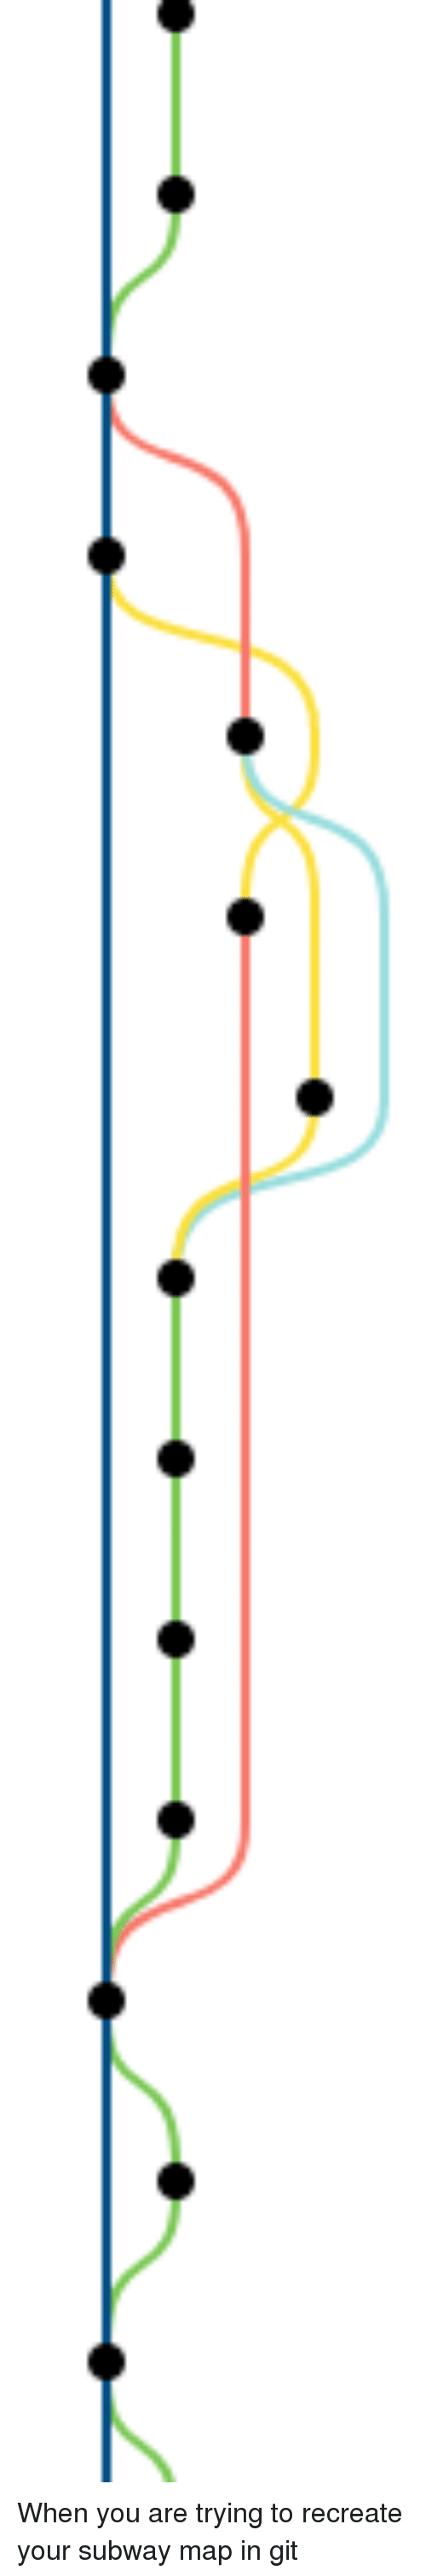 Subway, Git, and Map: When you are trying to recreate your subway map in git